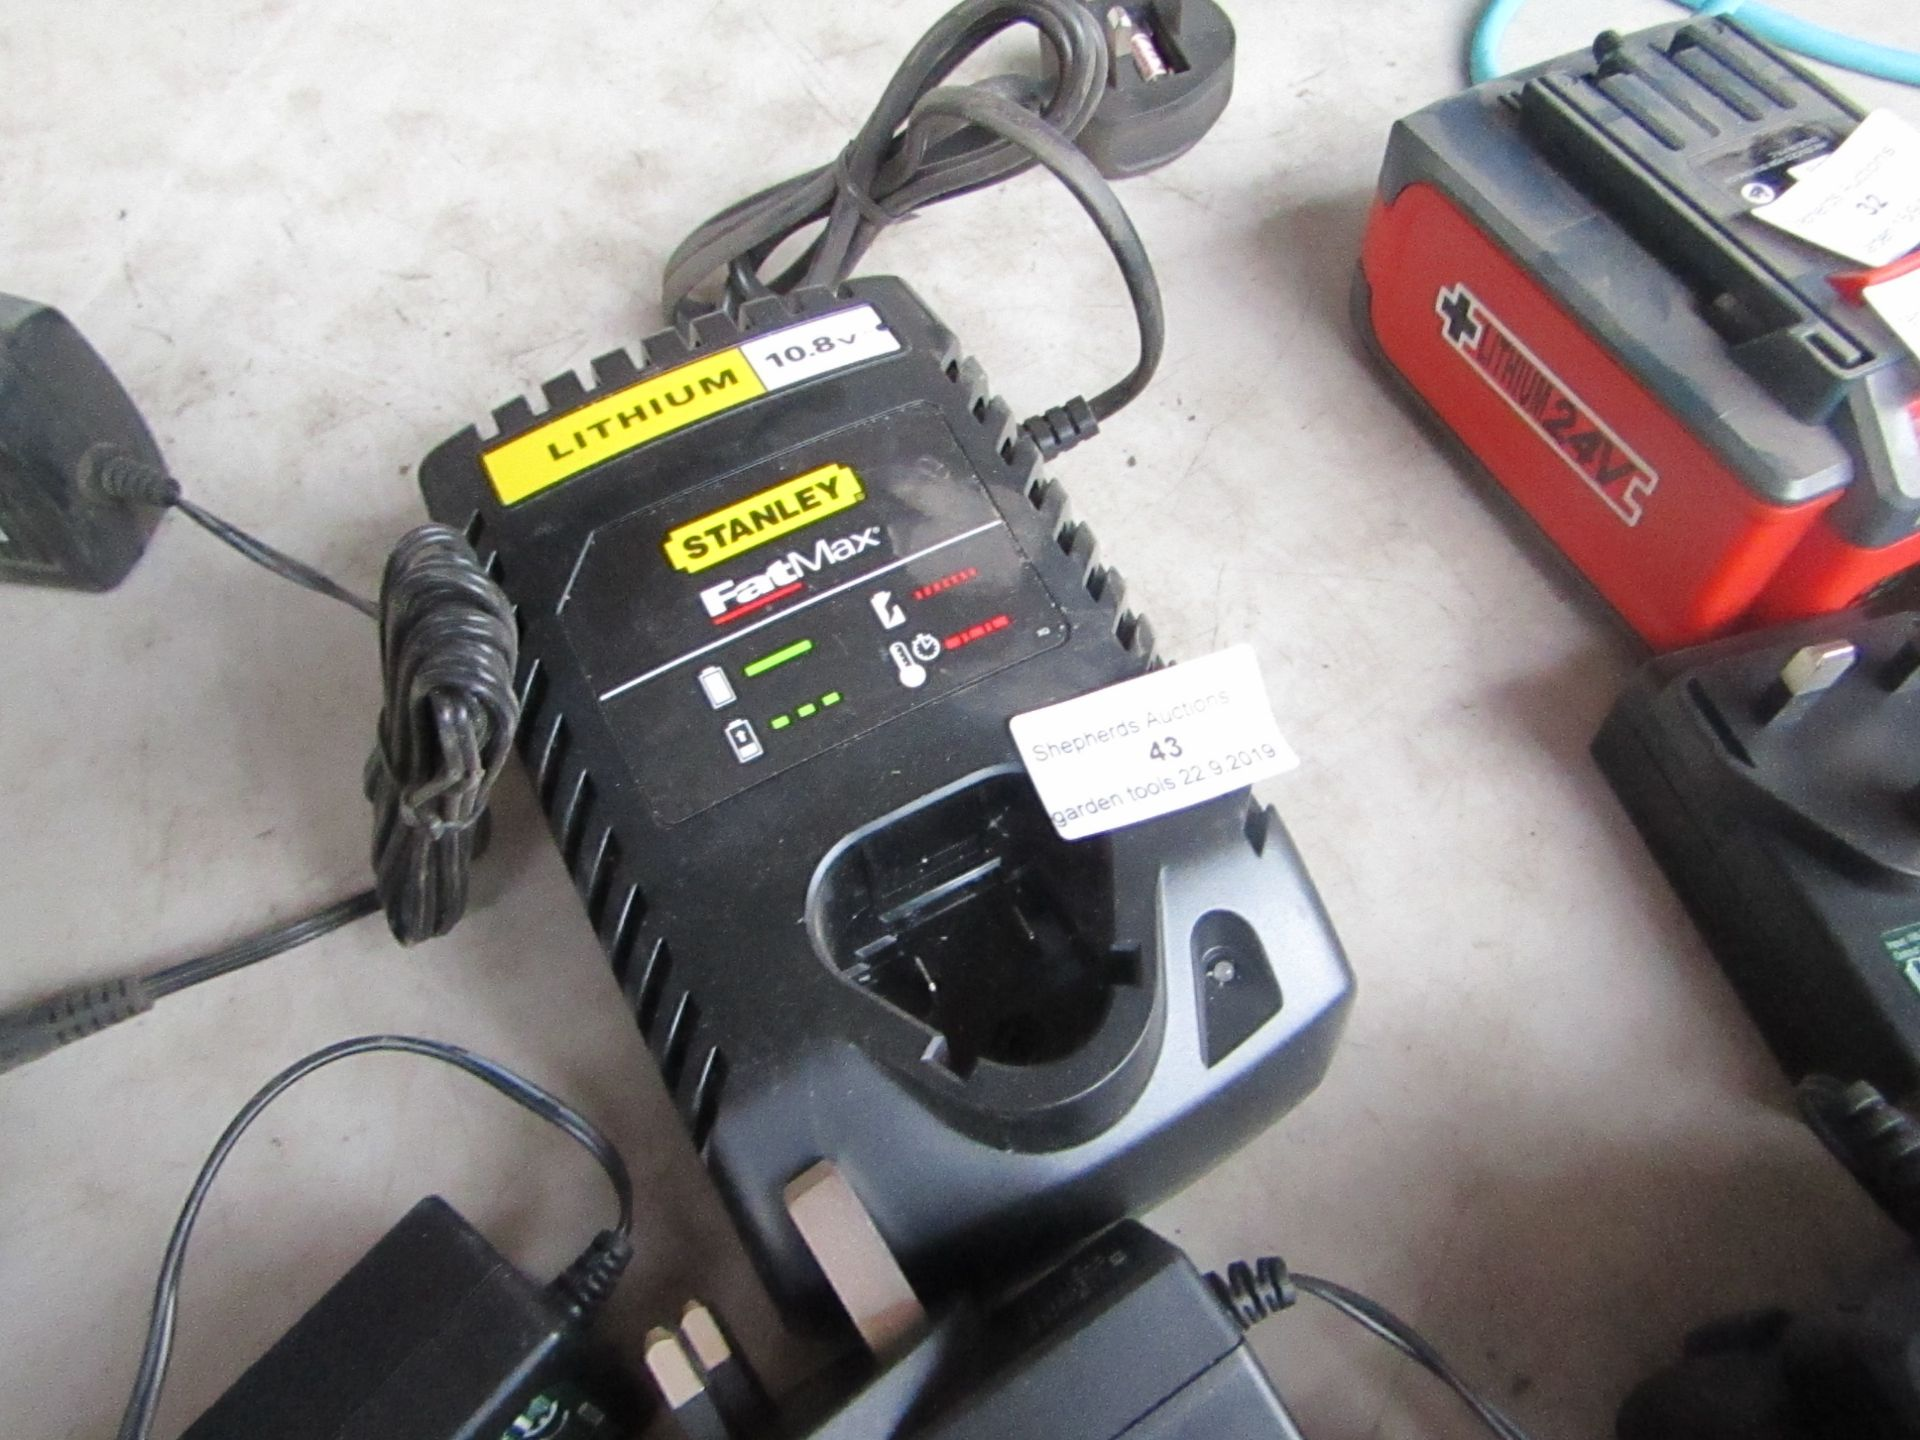 Lotto 43 - Stanley Fat Max 10.8V charger, unchecked